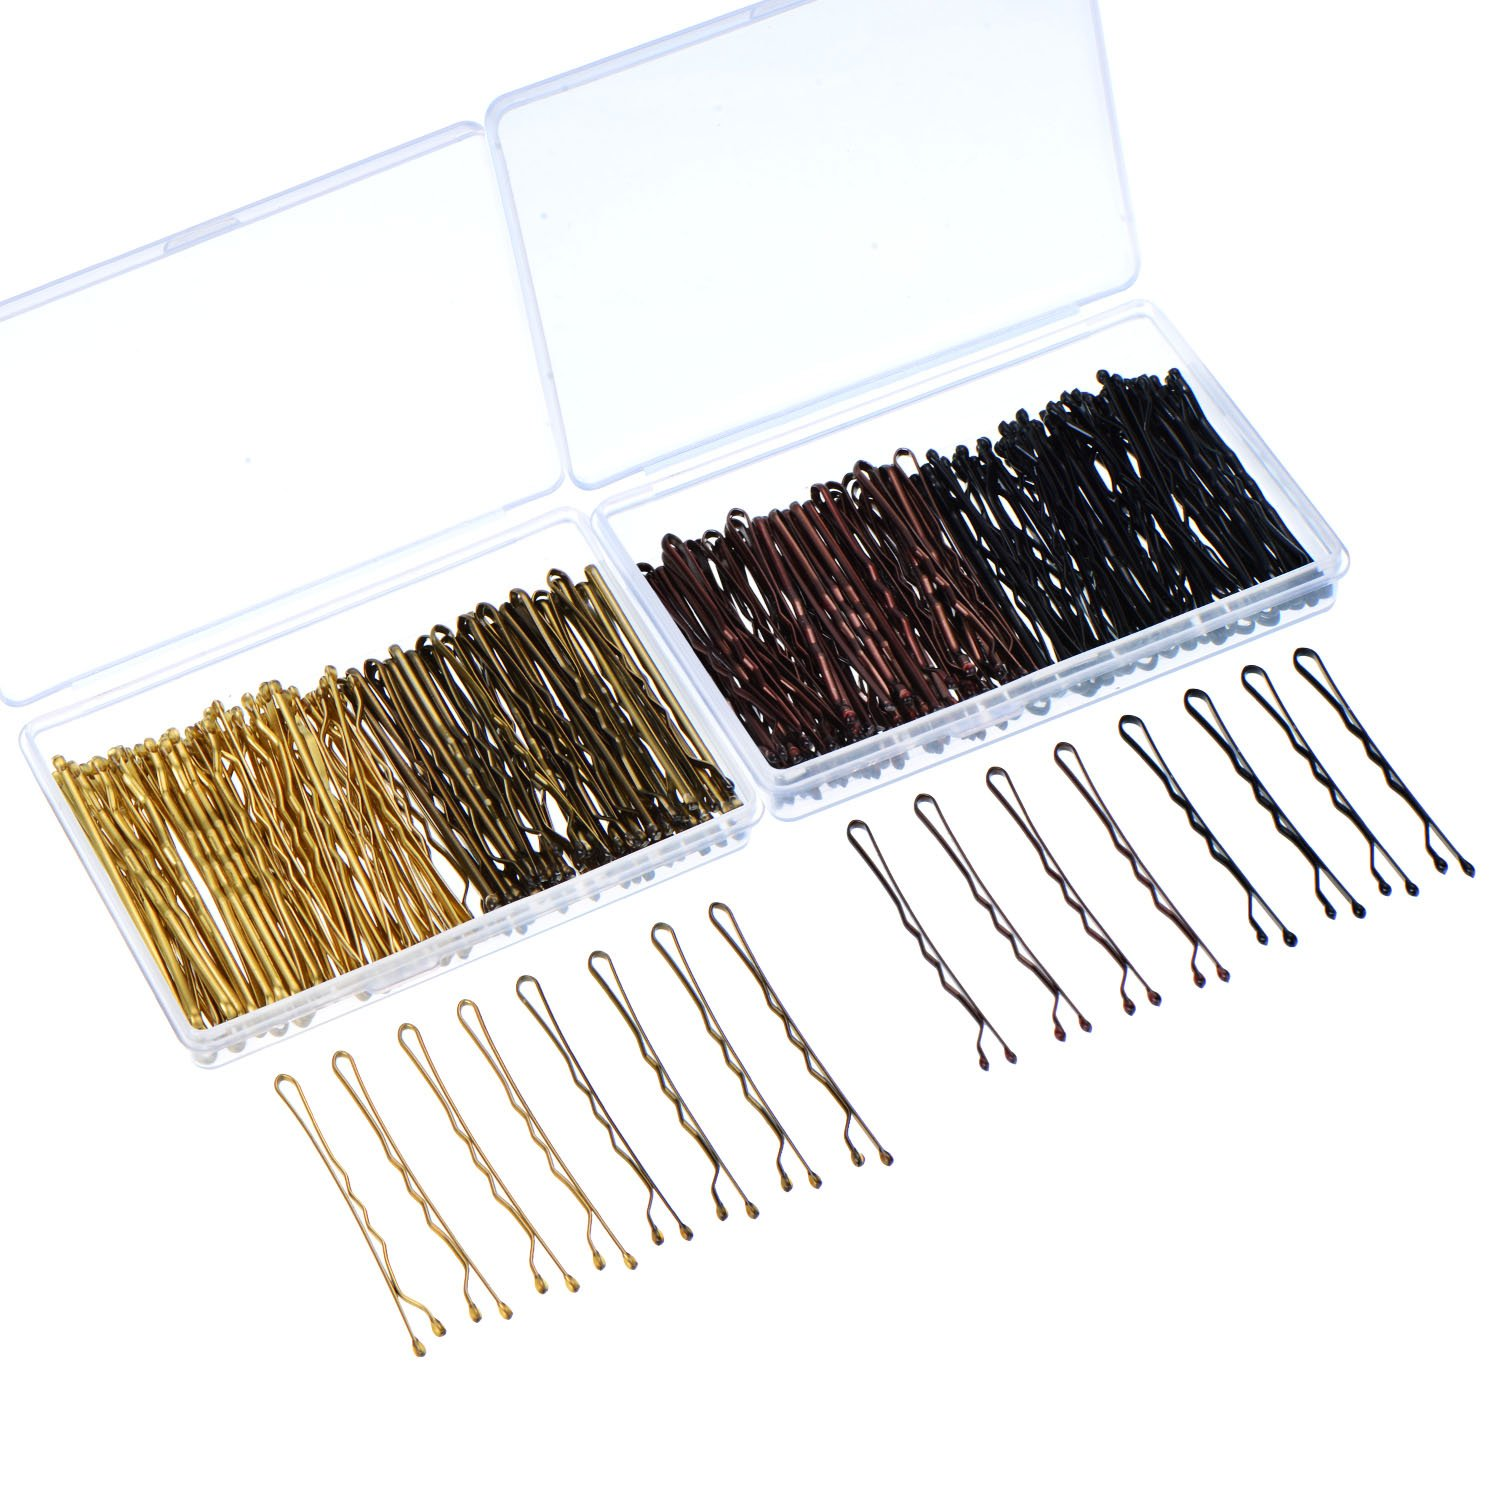 Hicarer 200 Pieces Bobby Pins 4 Colors Hair Pins Hair Clips with Clear Boxes for Girls and Women